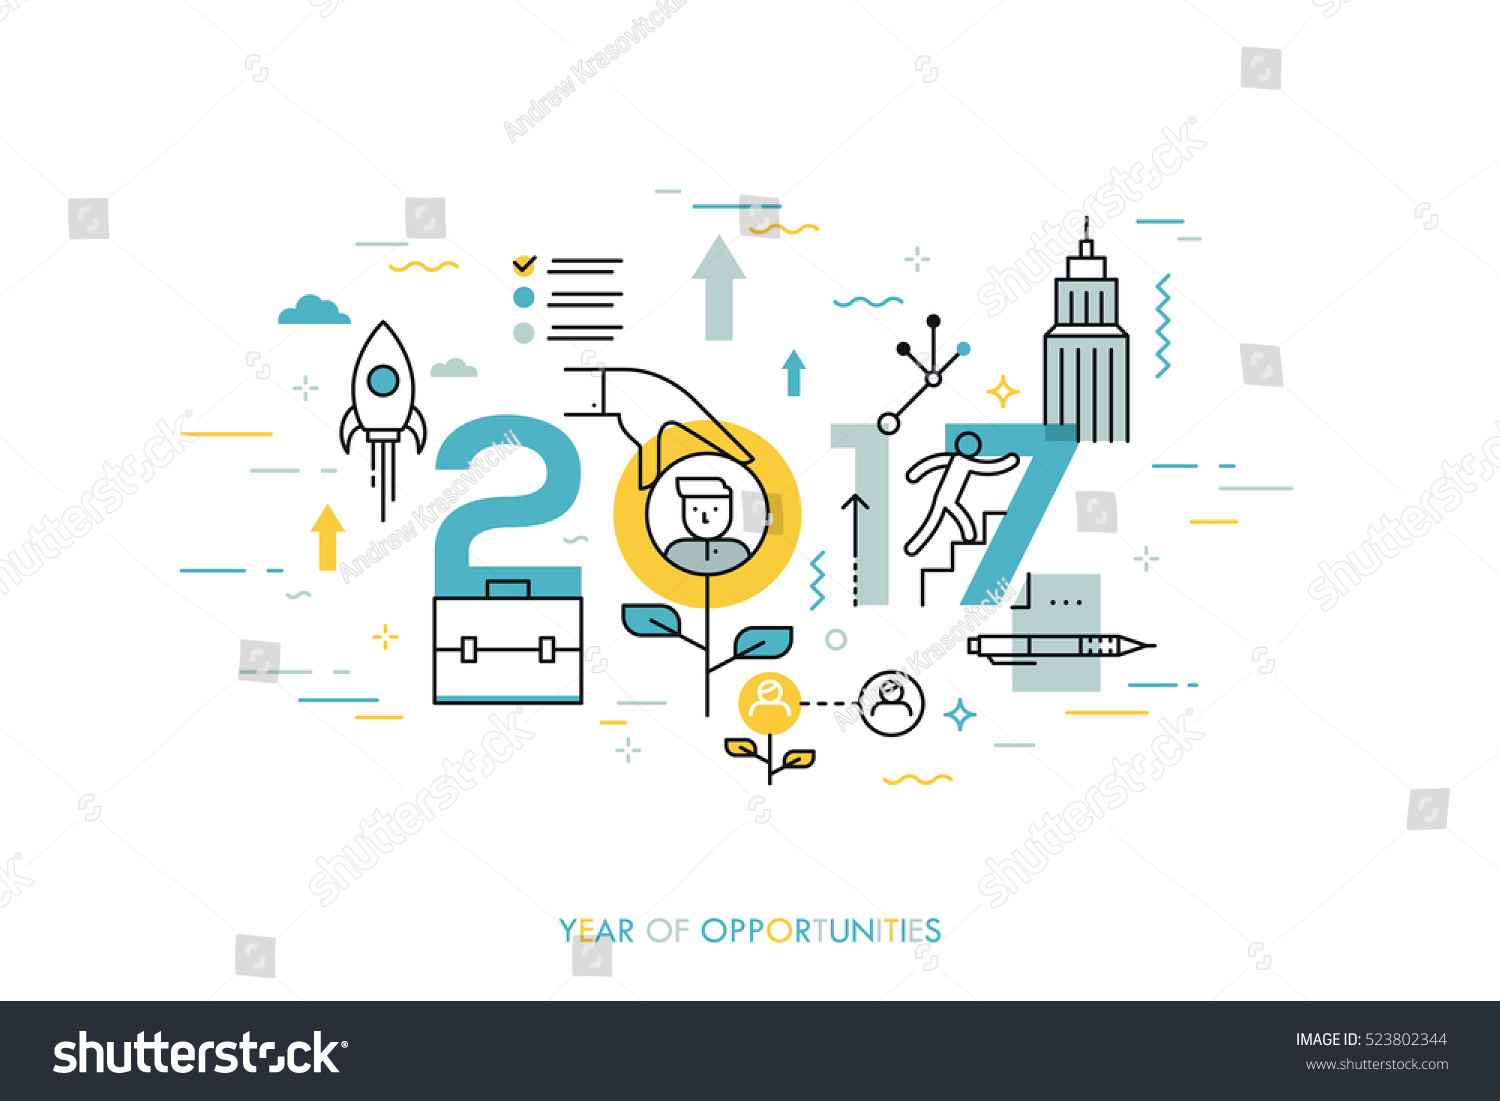 infographic concept 2017 year of opportunities new trends and prospects in career building